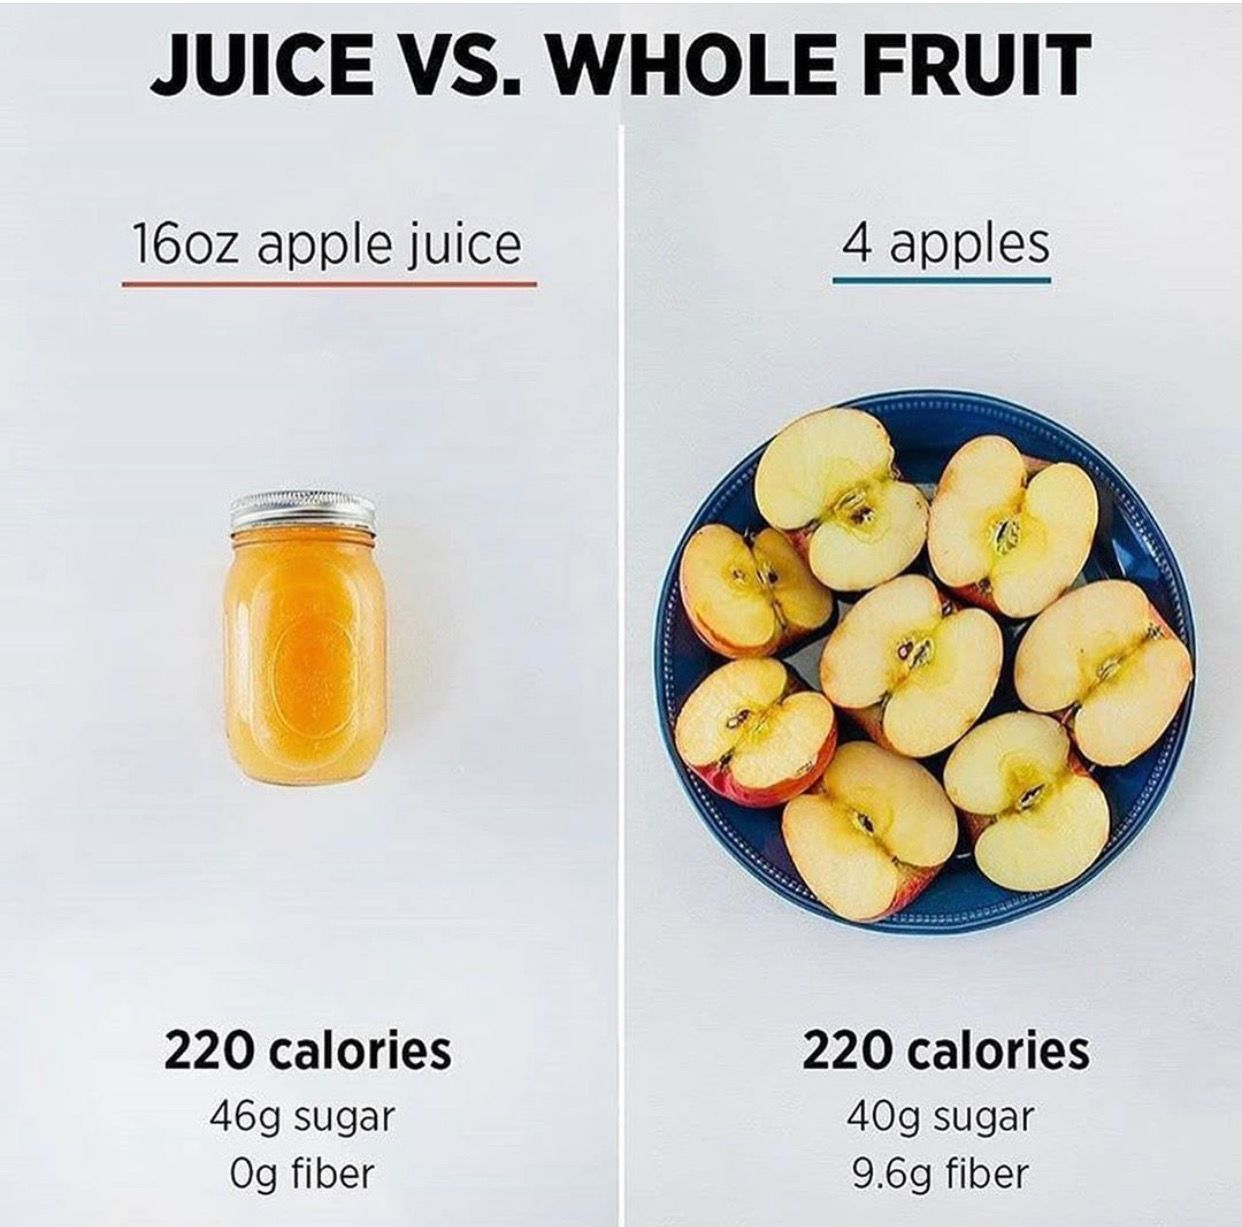 Pin by dreamgirl🌸 on Food Juicer recipes, Fruit benefits